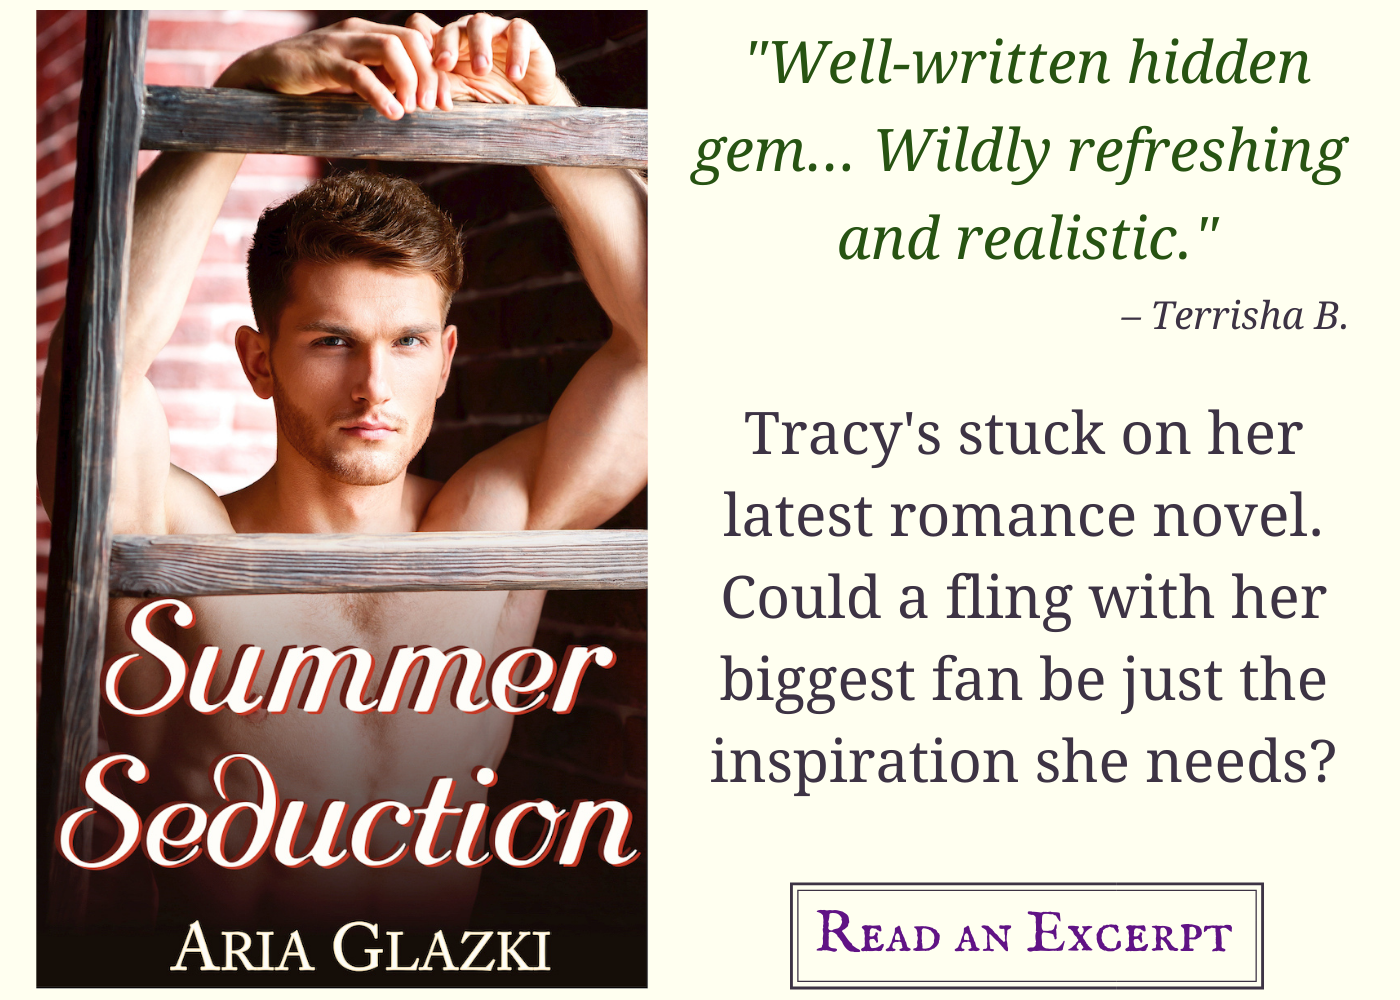 """Image card for Summer Seduction by Aria Glazki, featuring book cover and text: """"Well-written hidden gem... Wildly refreshing and realistic. –Terrisha B. Tracy's stuck on her latest romance novel. Could a fling with her biggest fan be just the inspiration she needs? Read an Excerpt."""